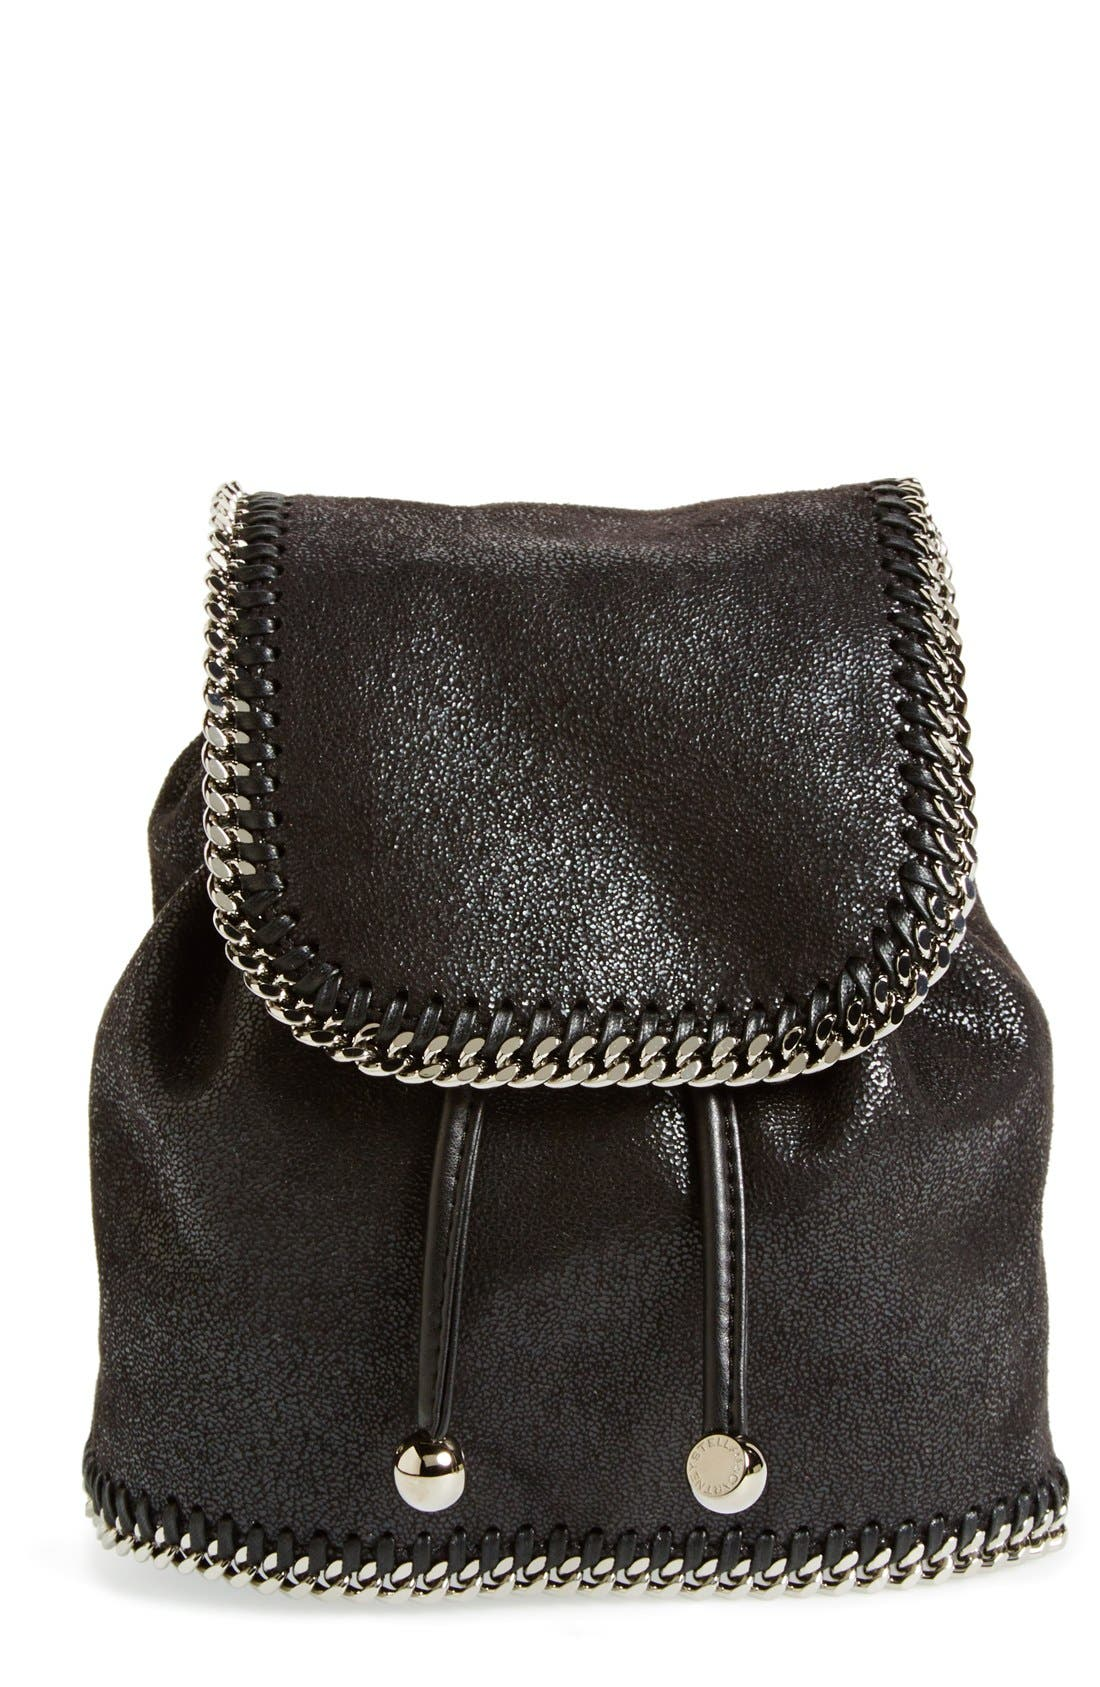 Alternate Image 1 Selected - Stella McCartney 'Mini Falabella' Faux Leather Backpack